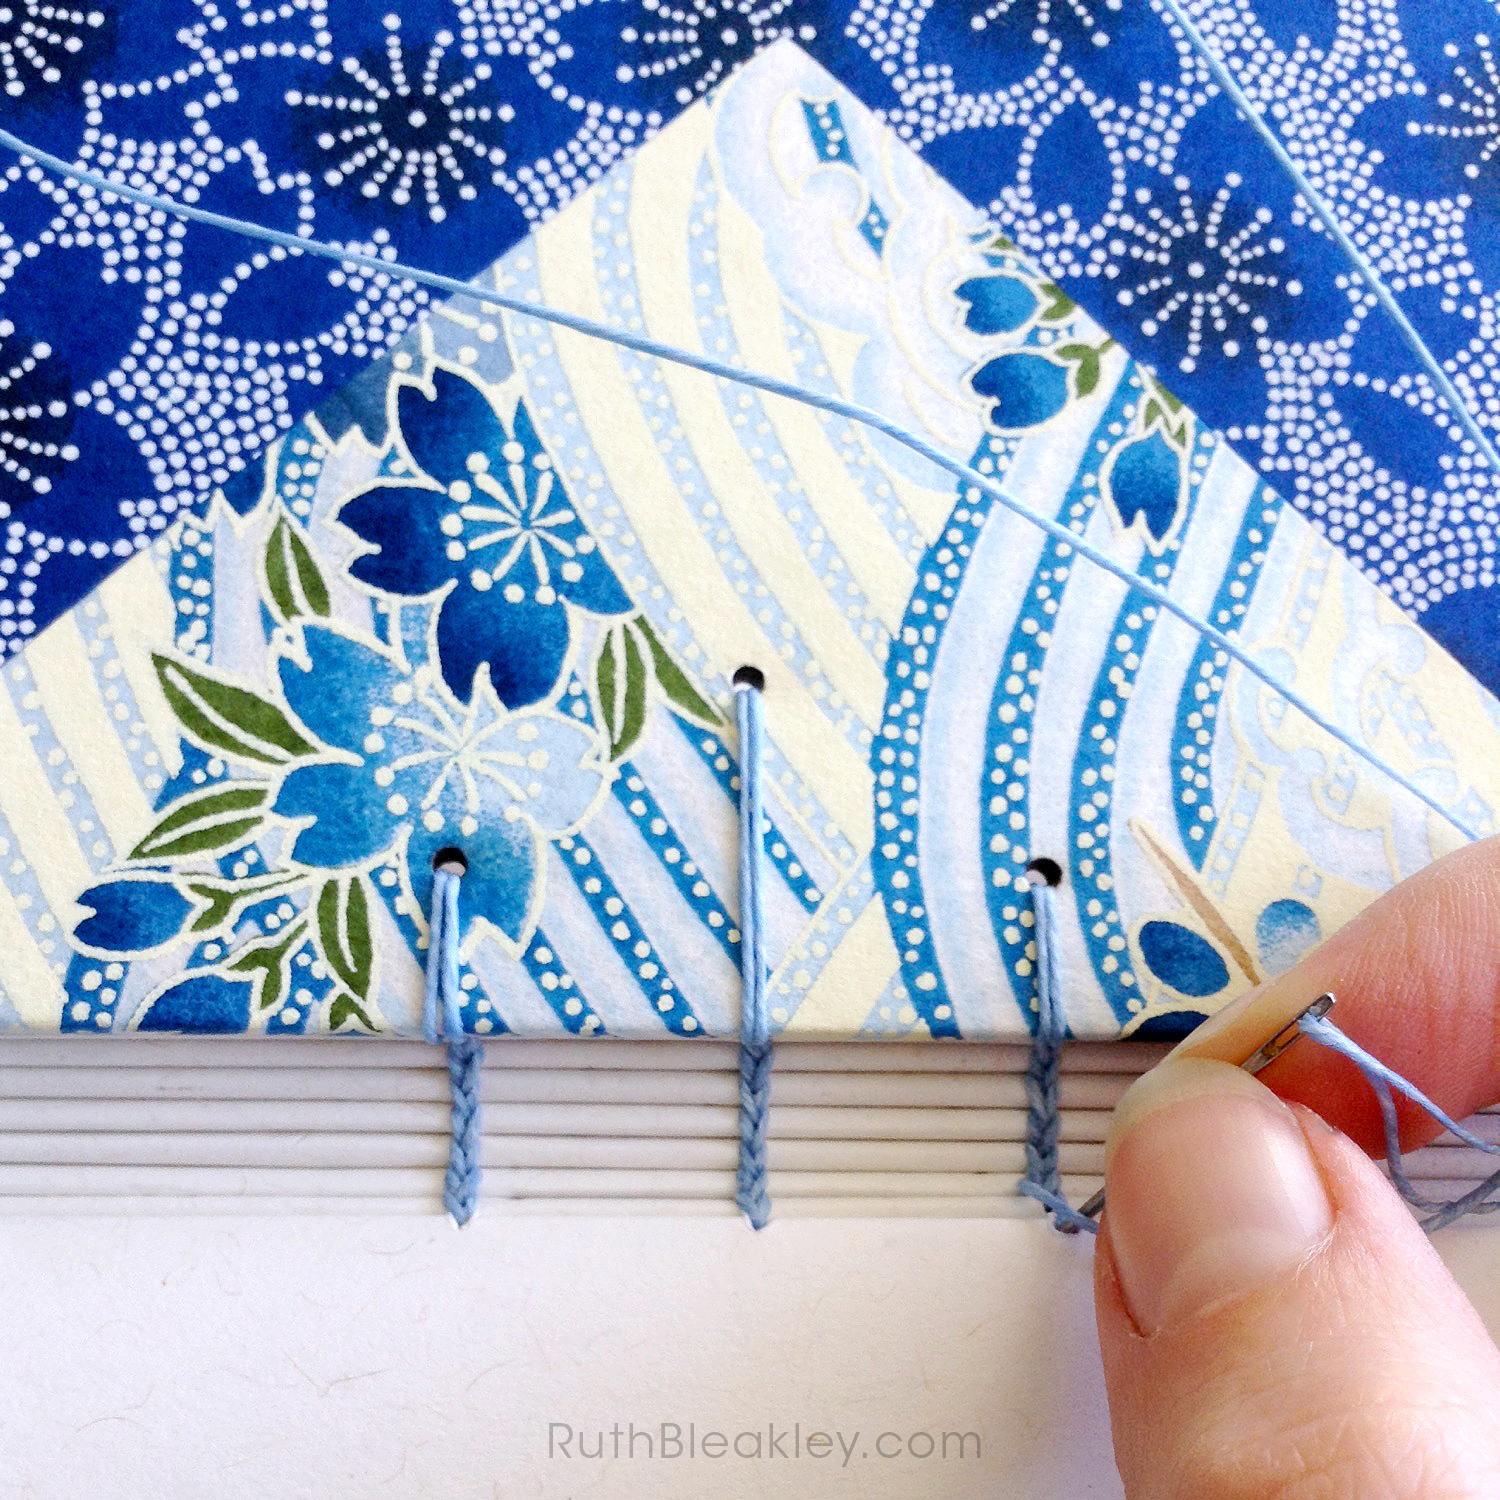 stitching coptic stitch books blue flower twin journal - Ruth Bleakley - 2